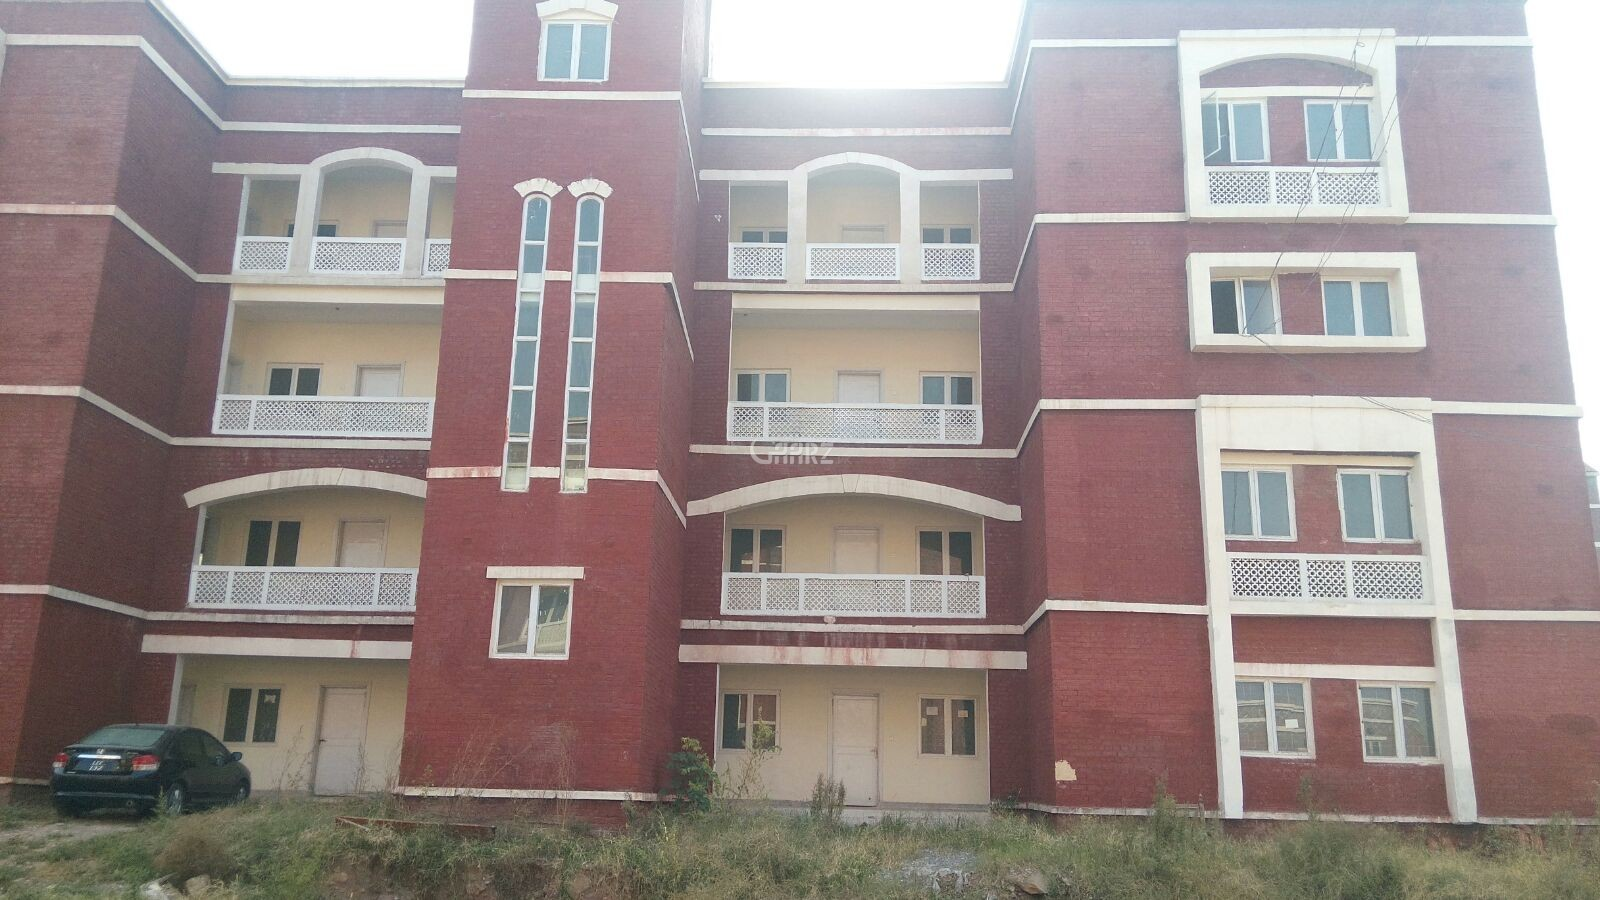 4 Marla Apartment for Rent in Karachi Stadium Commercial Area, DHA Phase-5,